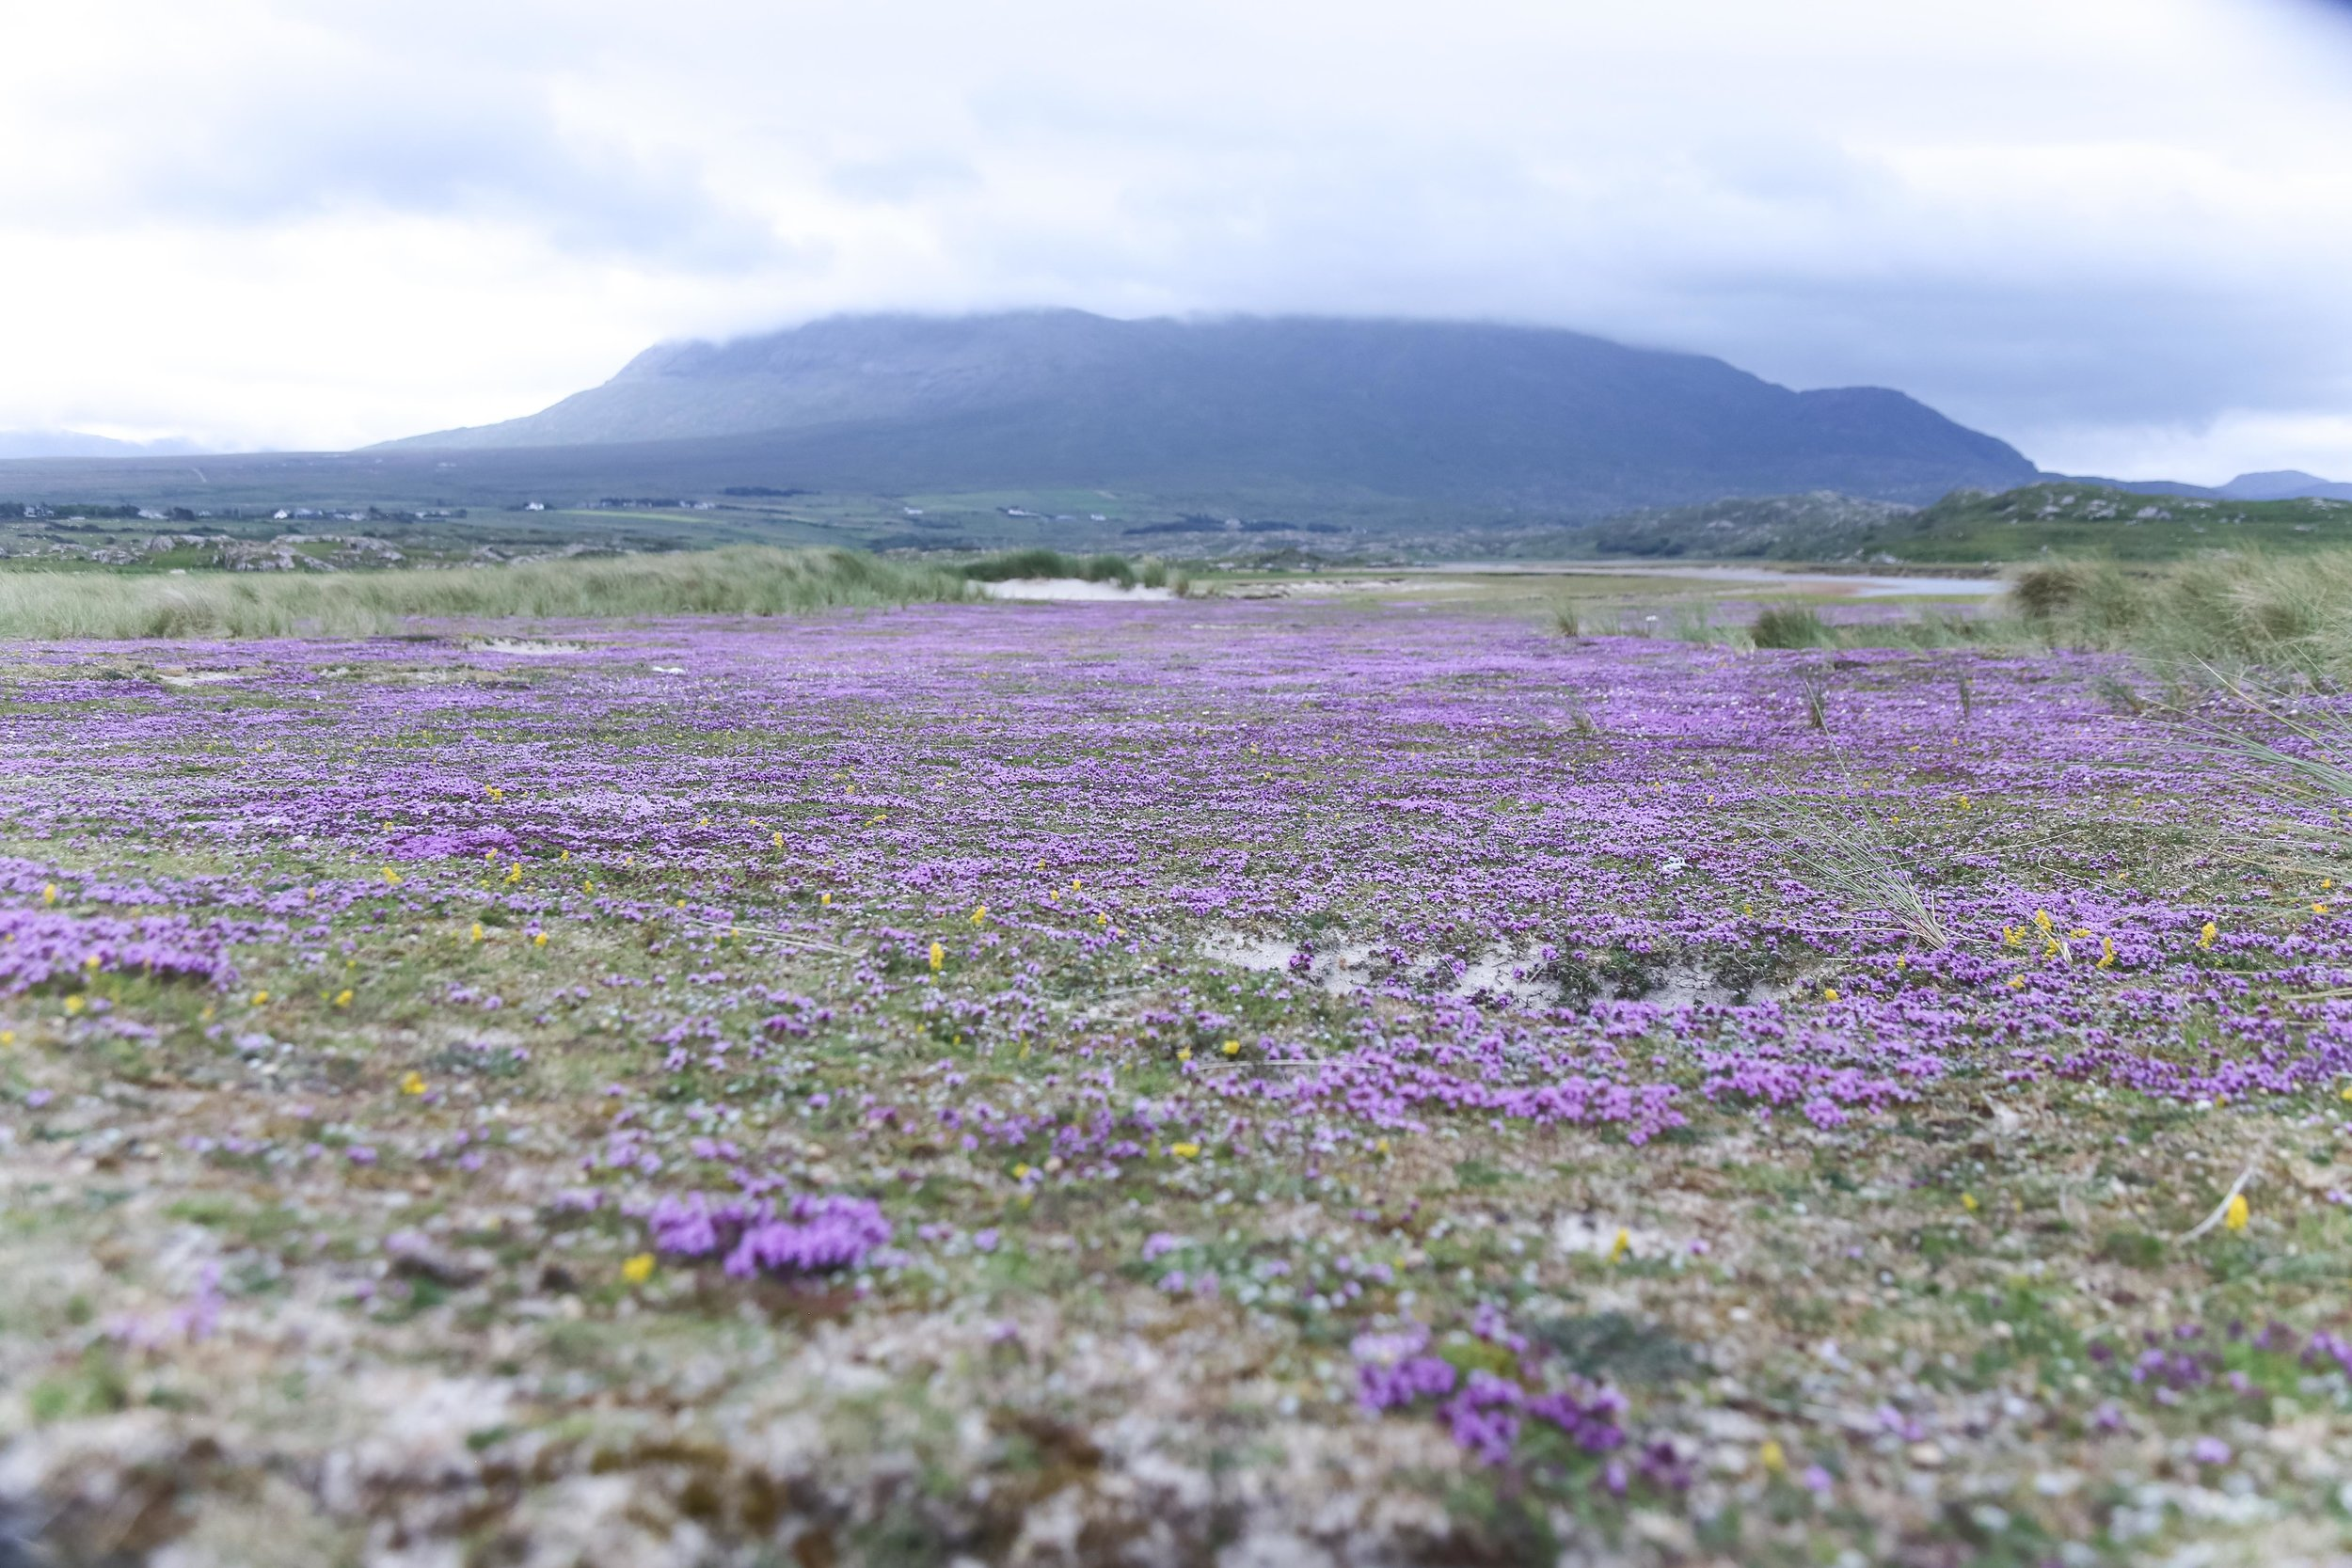 Machair grasslands are flat sandy plains that form between sand dunes and (often) an inland lake or rivers. From mid-June the machair close to Silver Strand at Thallabawn, Mayo is glowing with wild thyme flowers.